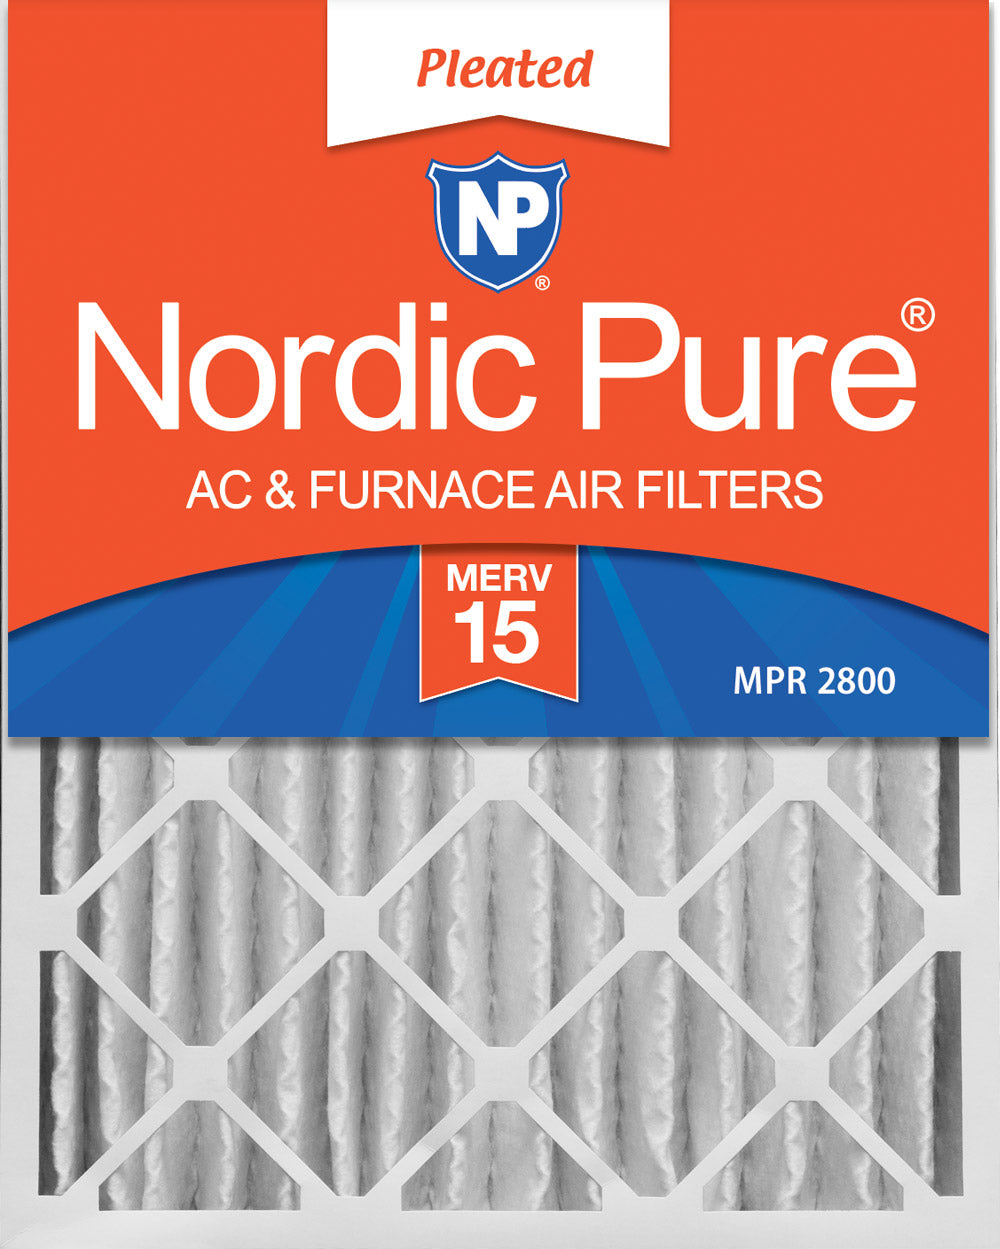 20x25x4 (3 5/8) Pleated MERV 15 Air Filters 2 Pack